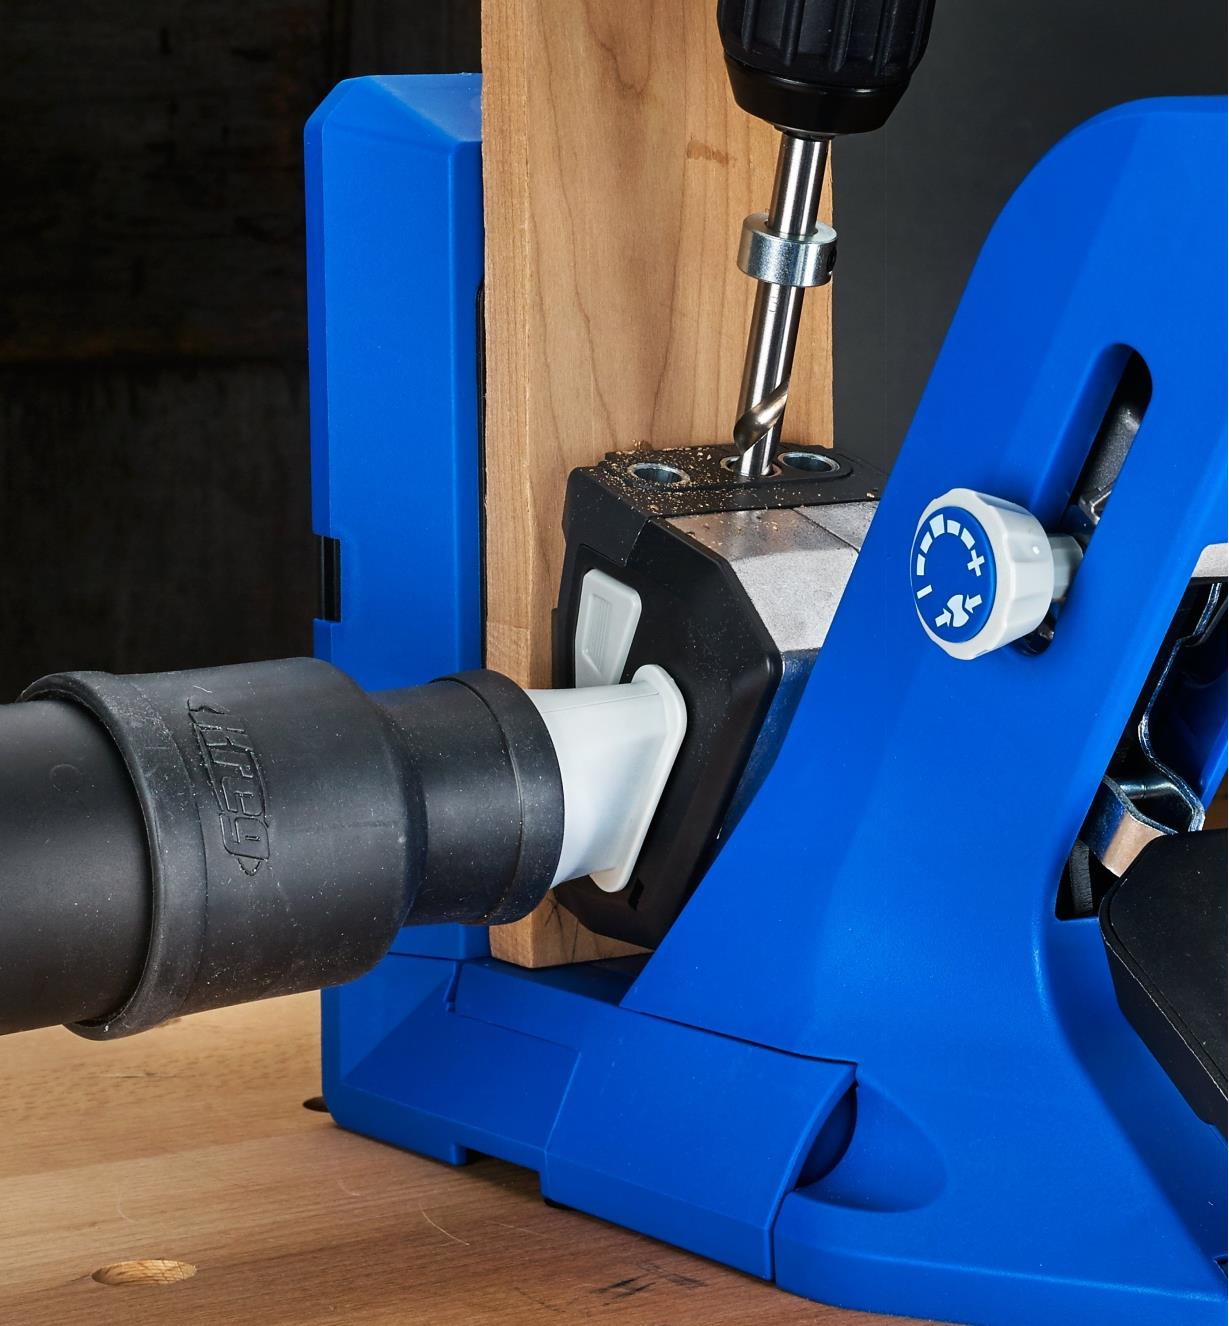 A close view of a Kreg 720 jig connected to a vacuum hose for debris clearance